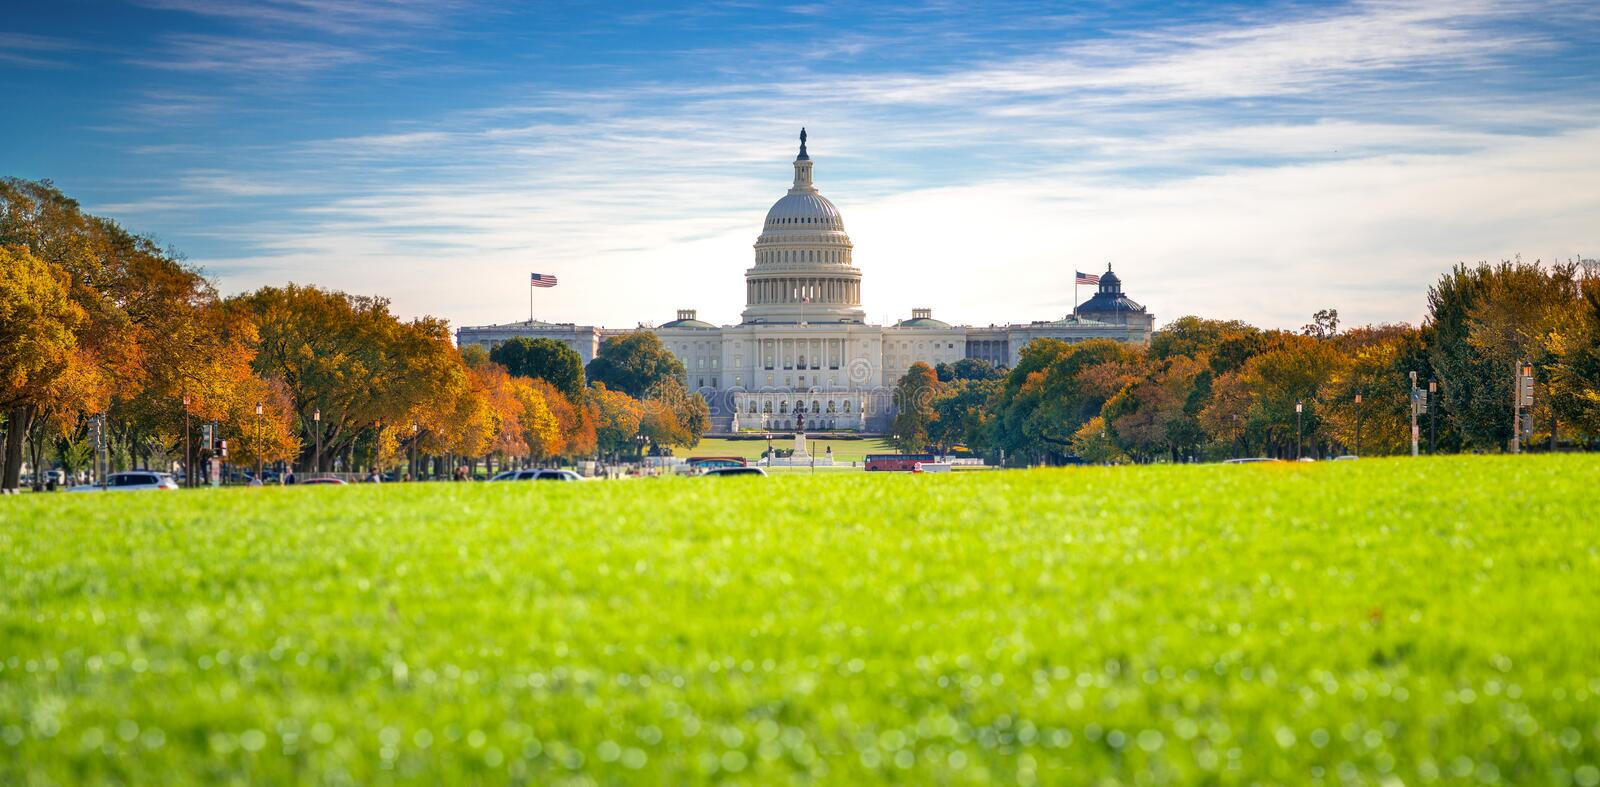 Goverment Capitol building in Washington DC with autumn park stock photography